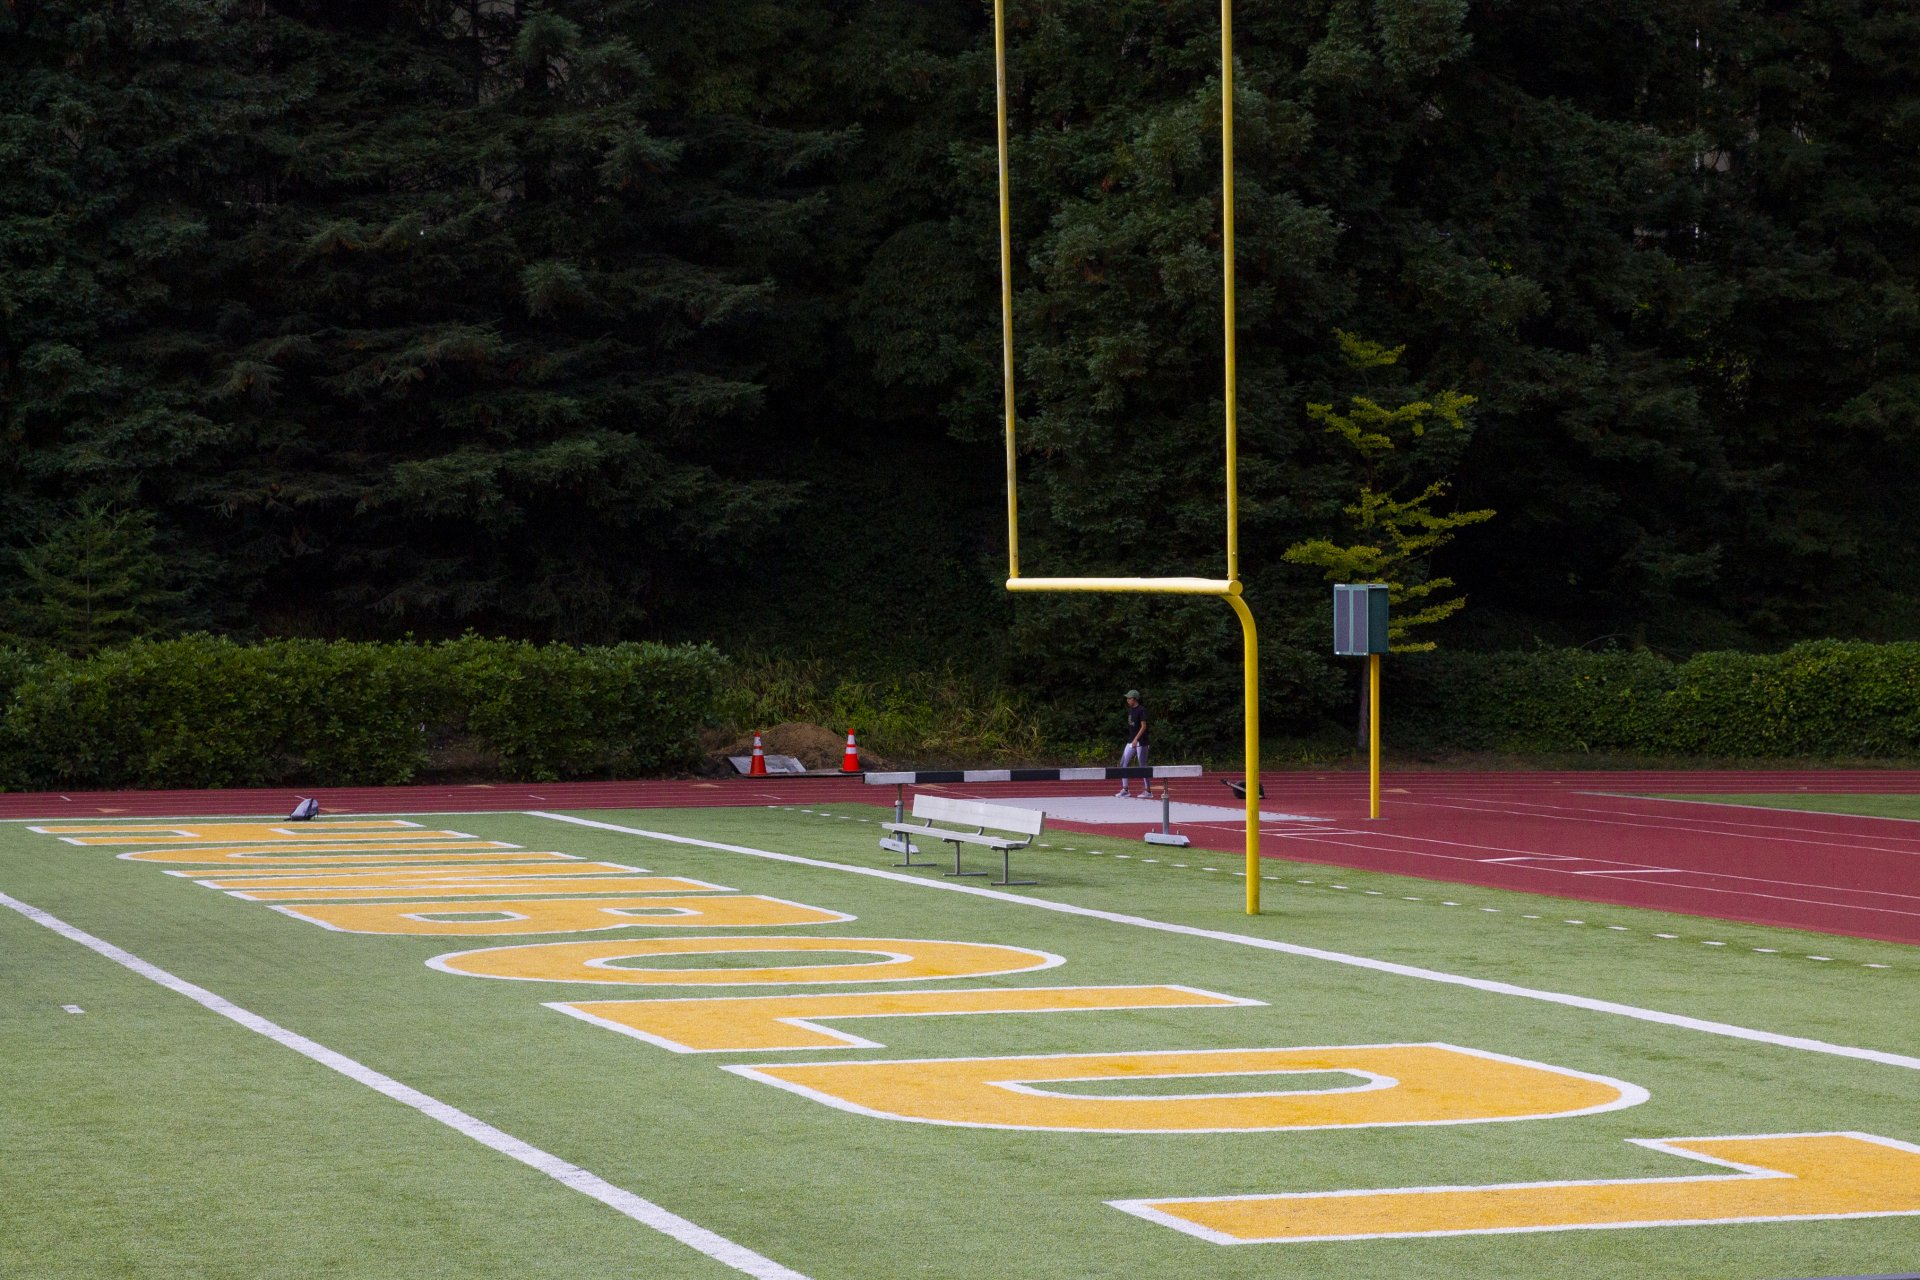 One of the end zones at the Redwood Bowl on campus on Sept. 15, 2020. | Photo by Thomas Lal